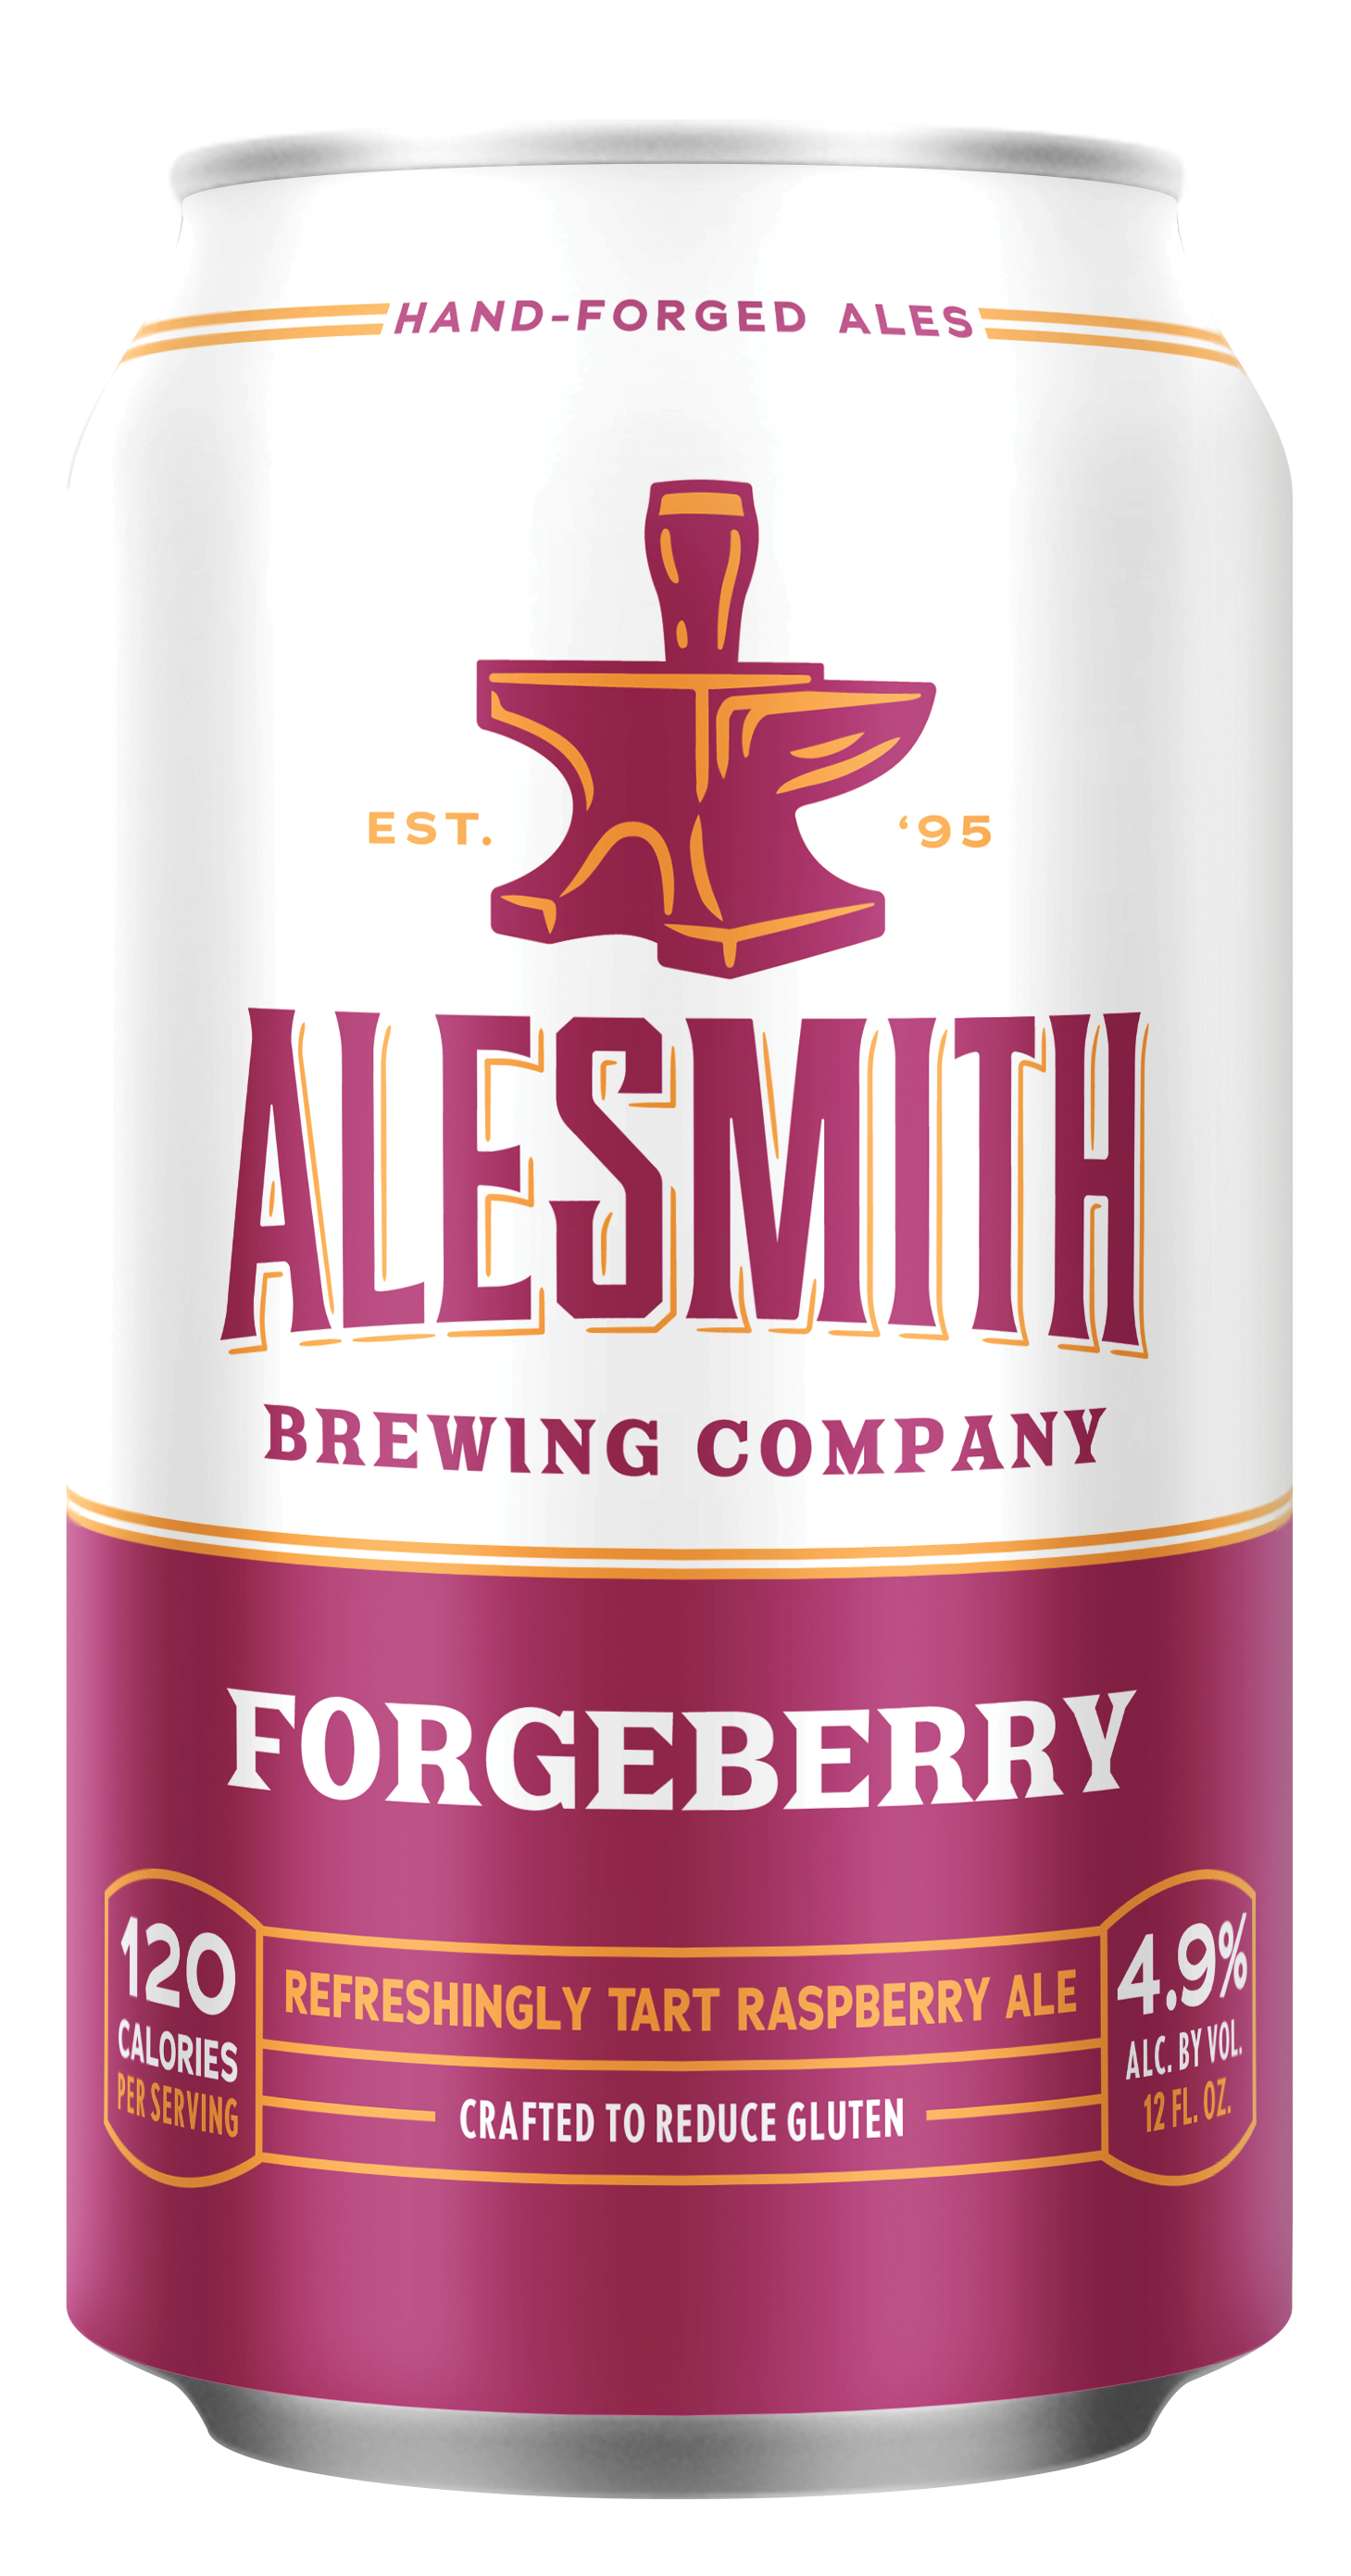 Forgeberry (4.9% ABV) 12oz Cans - Alesmith Brewing Company